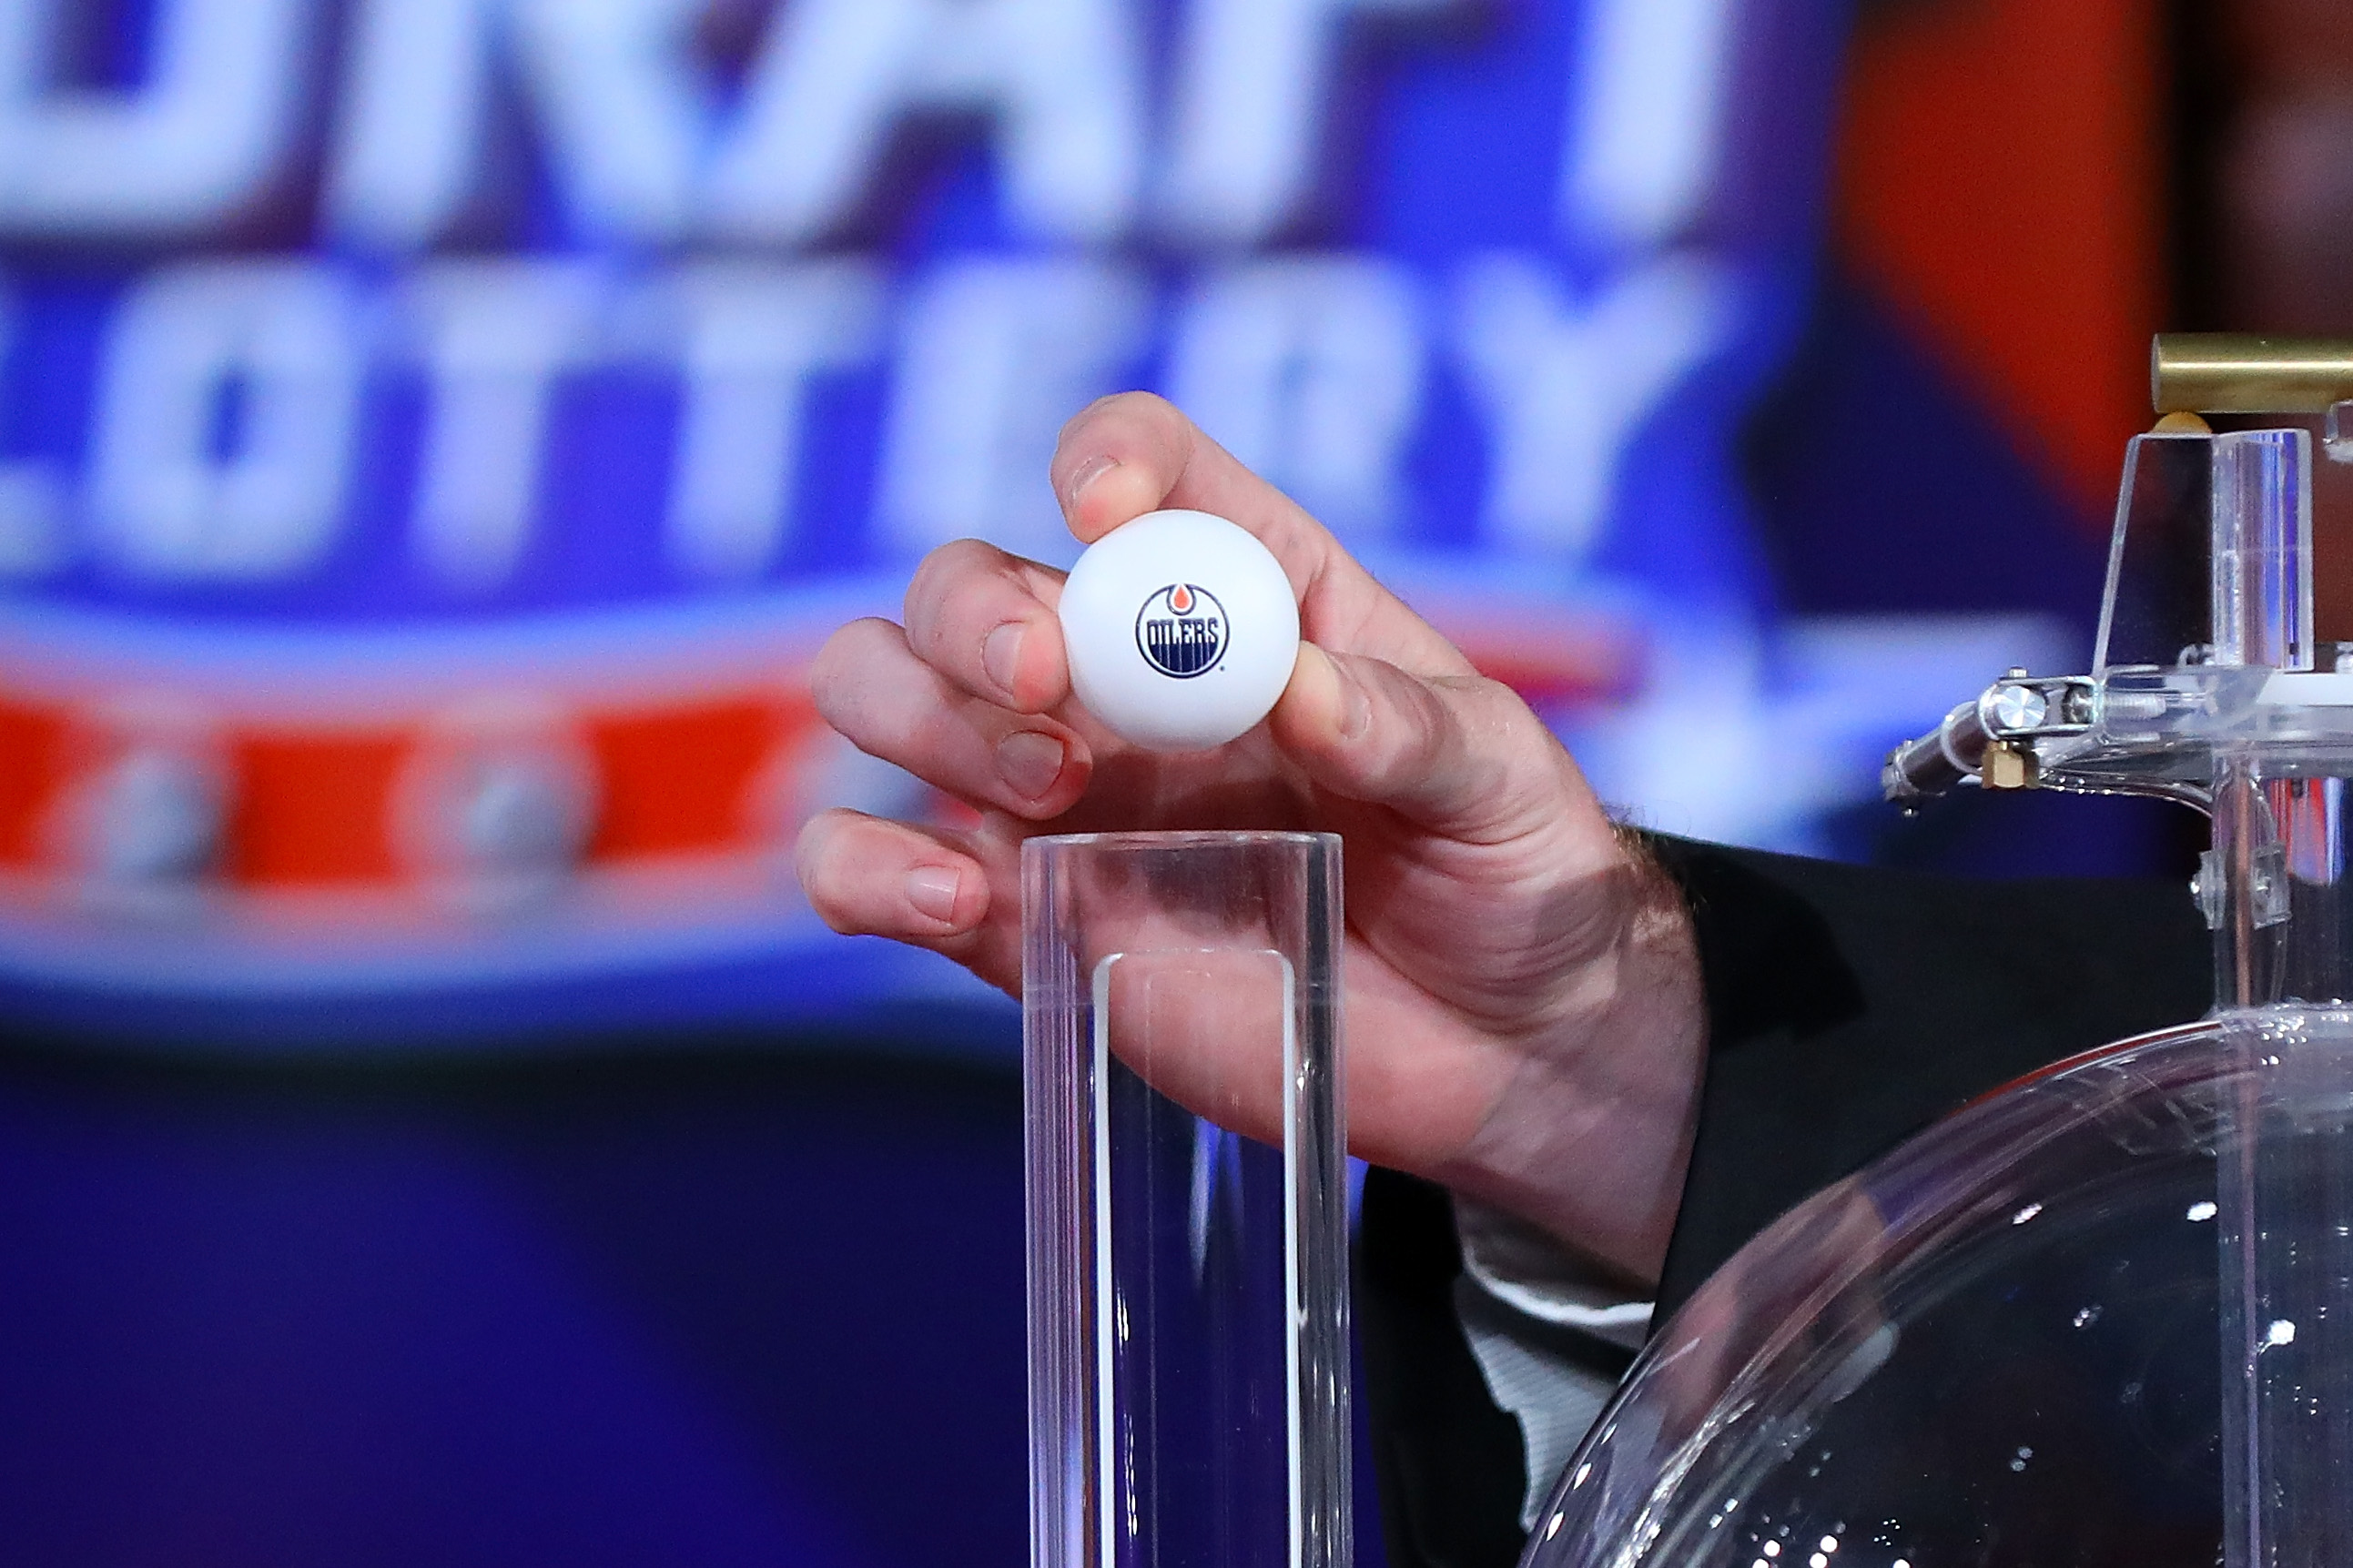 SECAUCUS, NEW JERSEY - AUGUST 10: Edmonton Oilers lottery ball is seen during Phase 2 of the 2020 NHL Draft Lottery on August 10, 2020 at the NHL Network's studio in Secaucus, New Jersey.